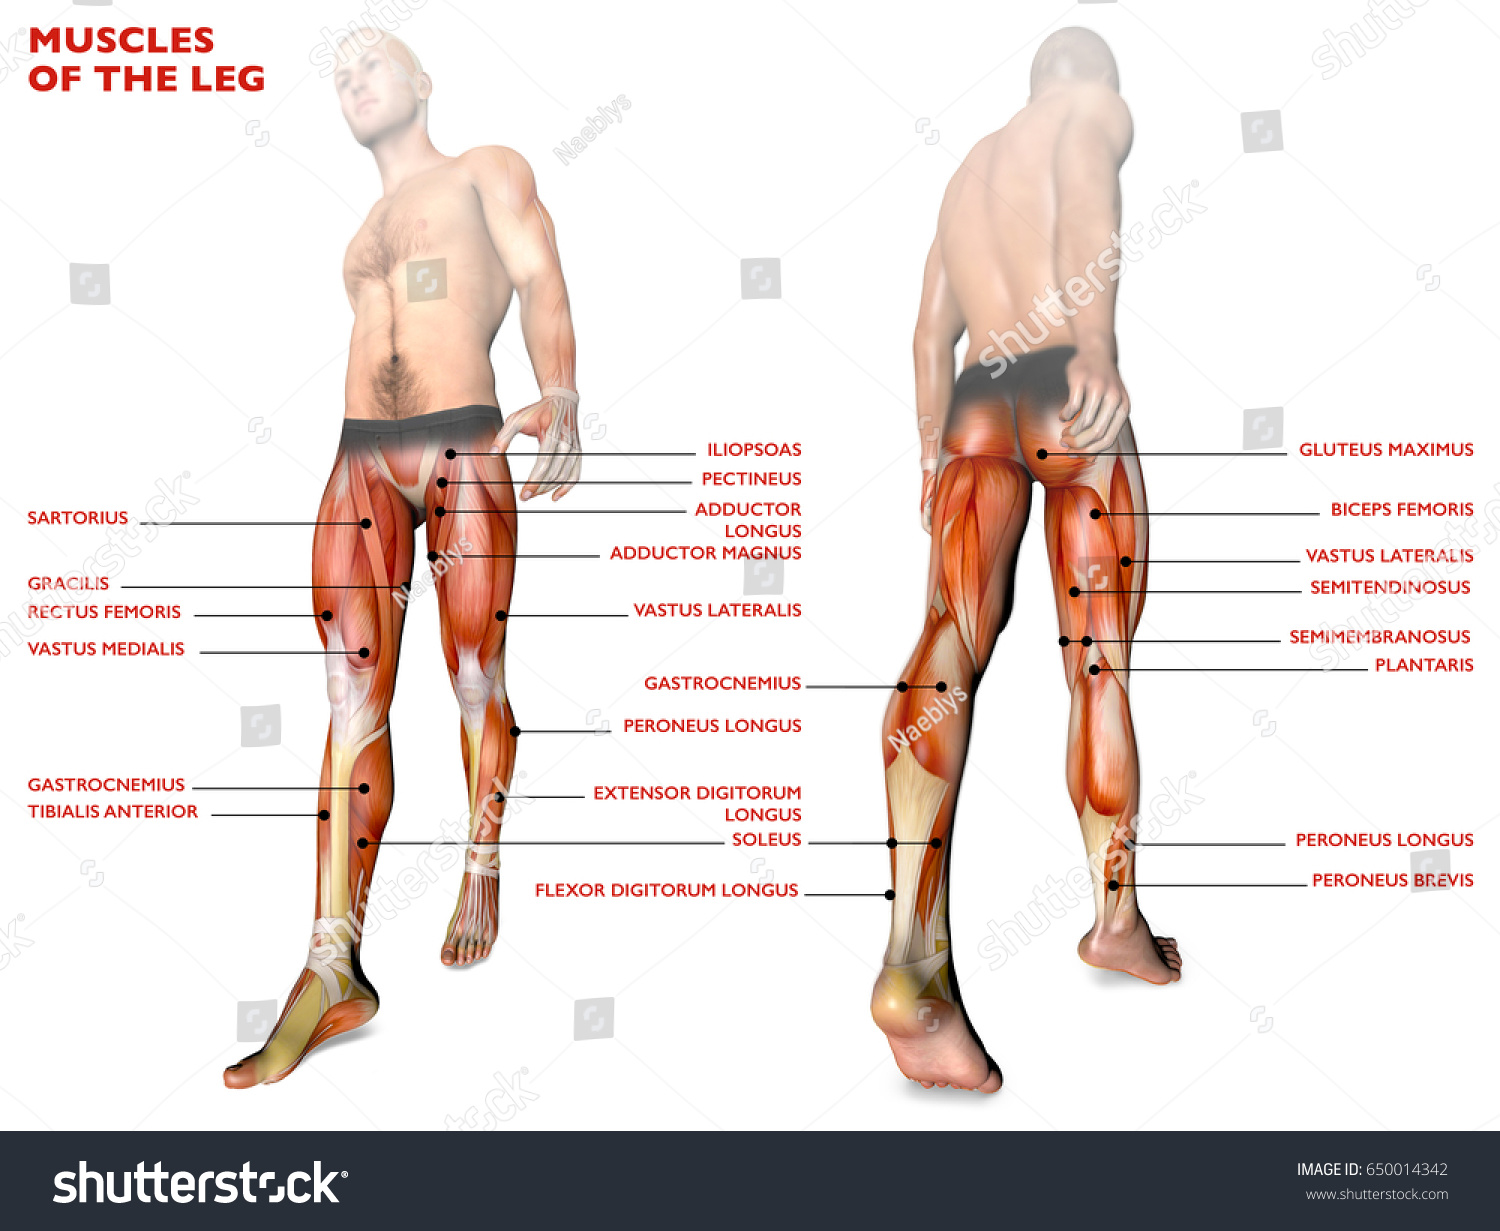 Leg Muscles Human Body Anatomy Muscle Stock Illustration 650014342